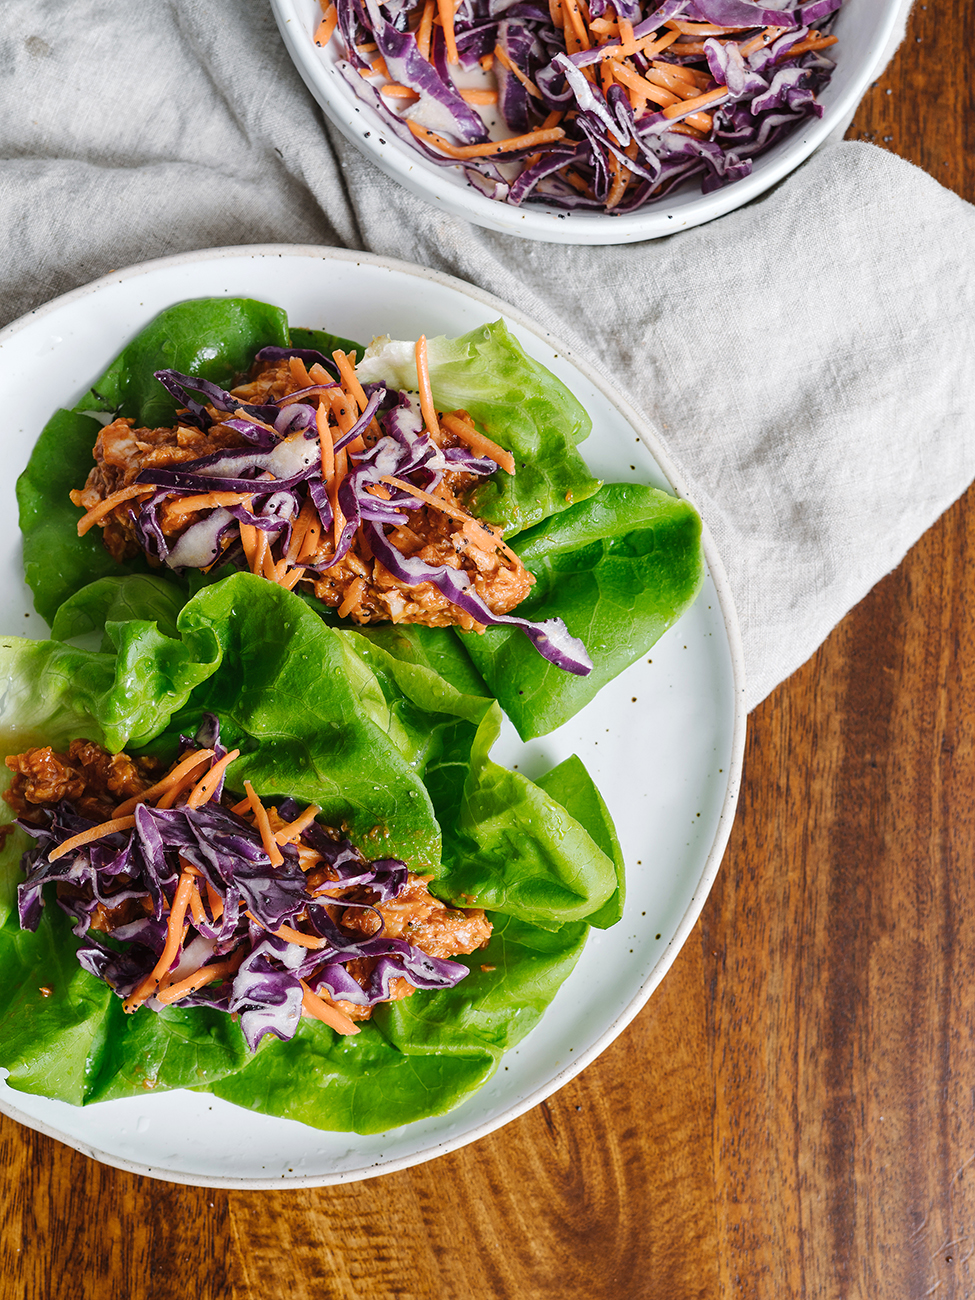 bbq pulled chicken on lettuce wraps